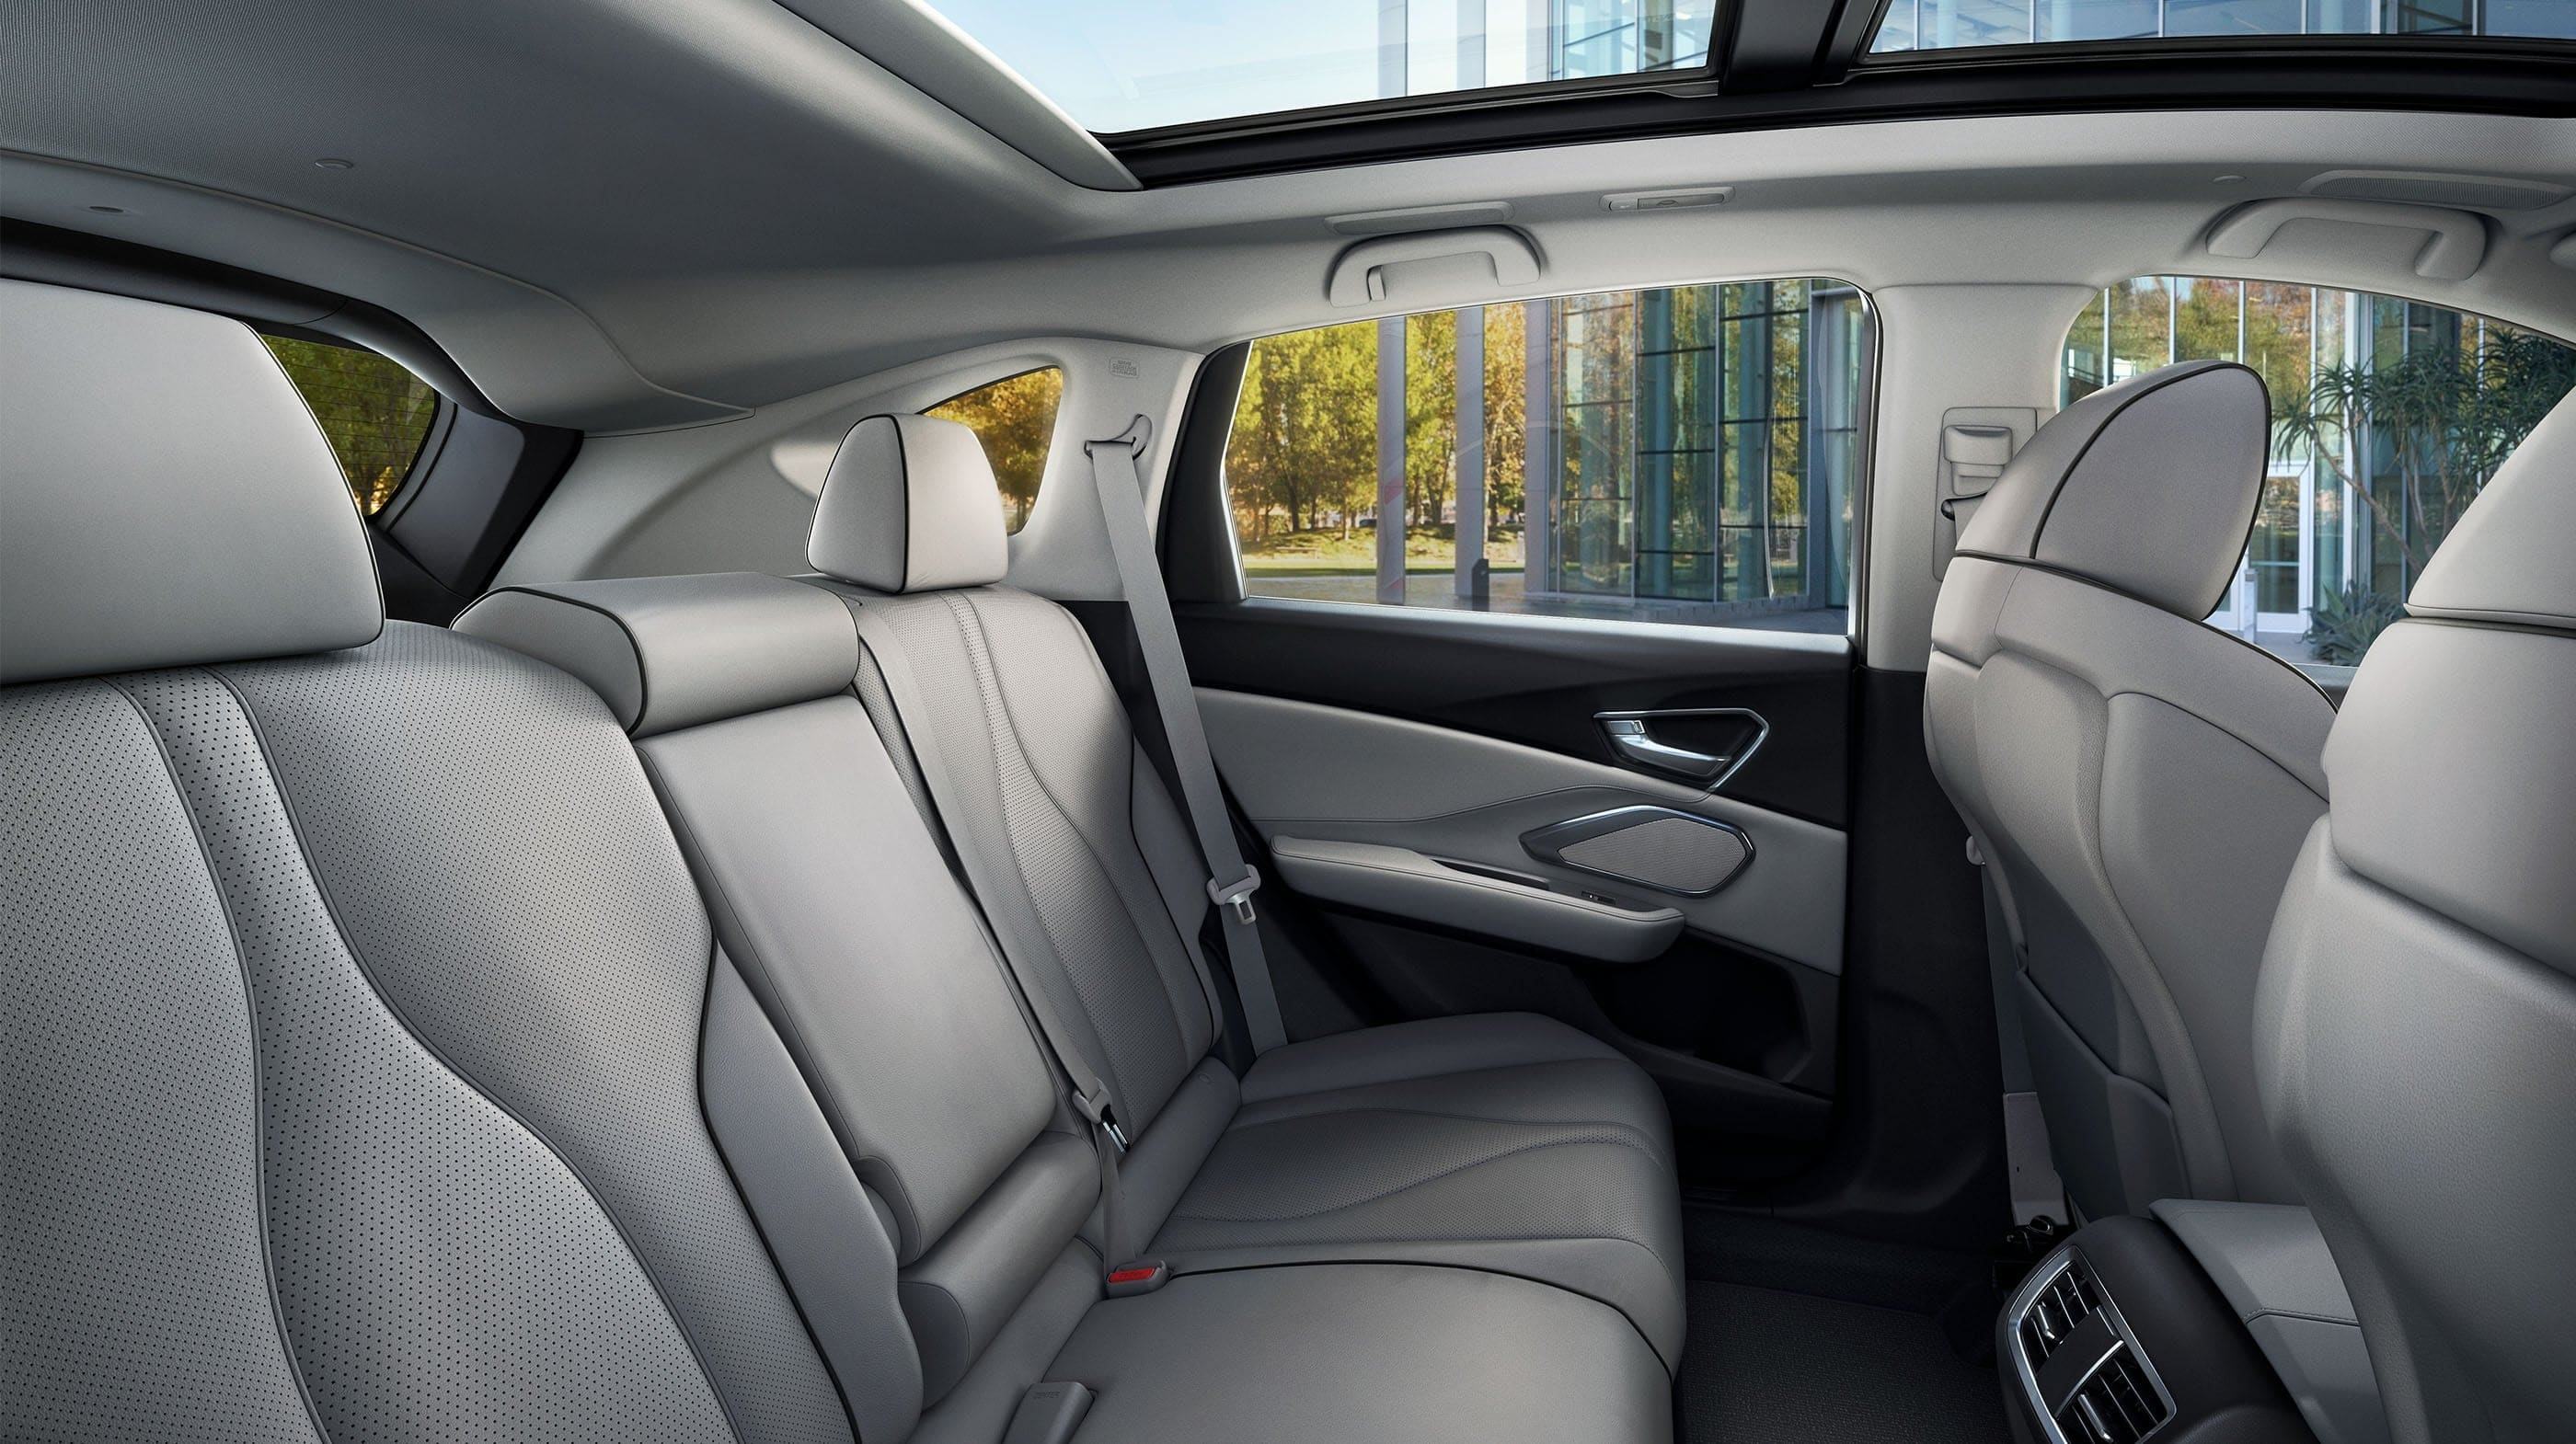 The Secure Cabin of the 2020 RDX